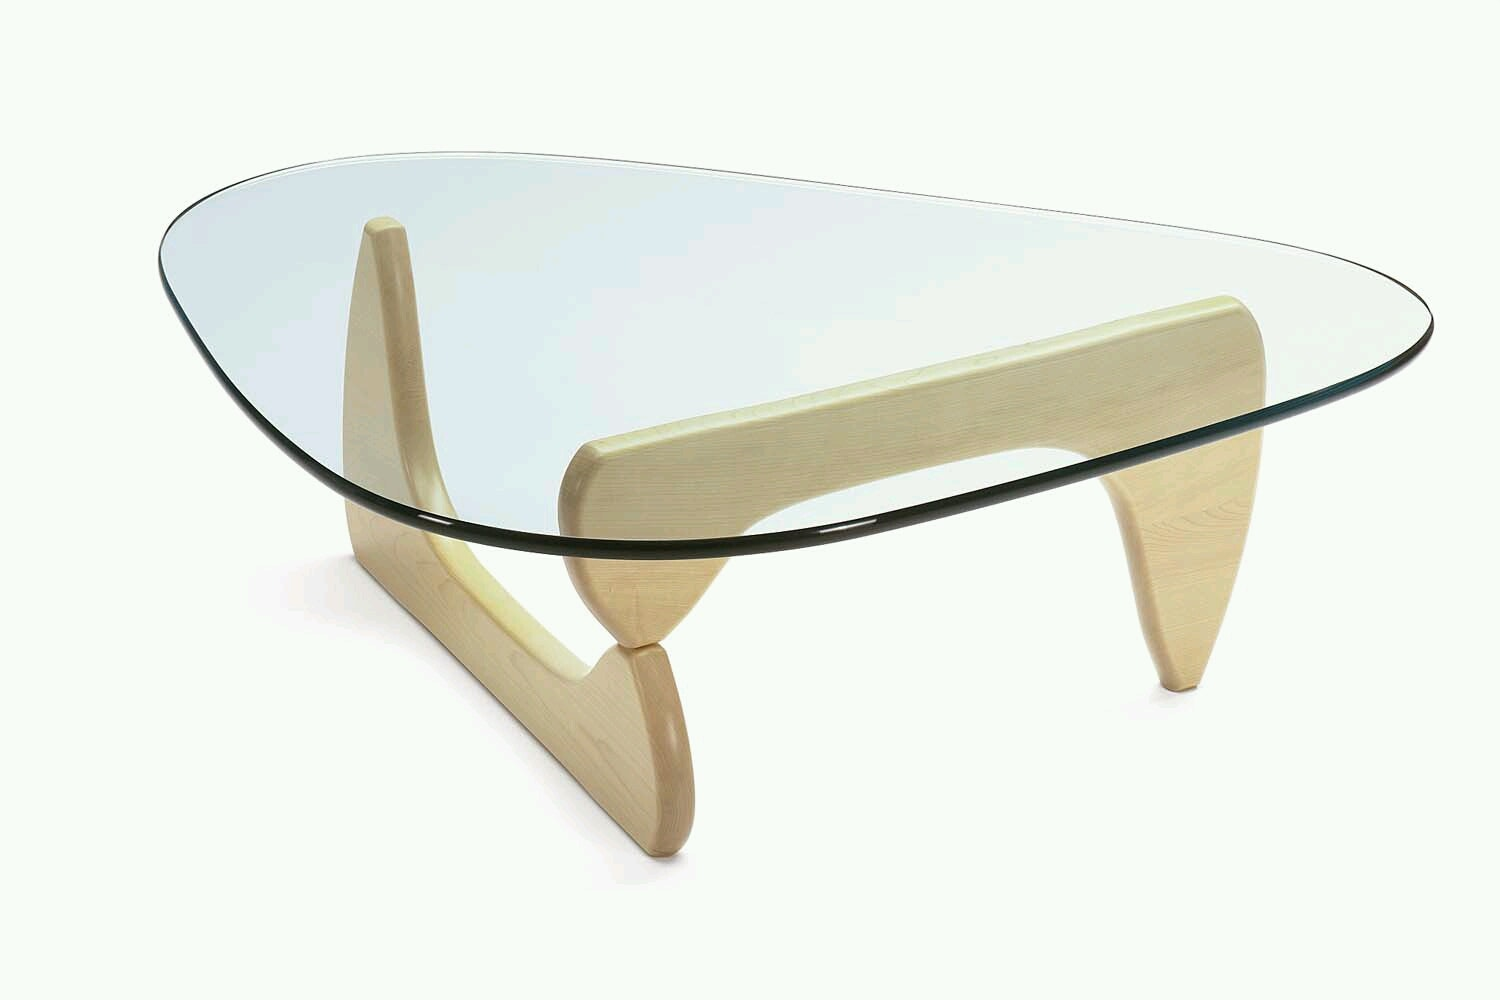 Noguchi Coffee Table Maple by Isamu Noguchi for Vitra